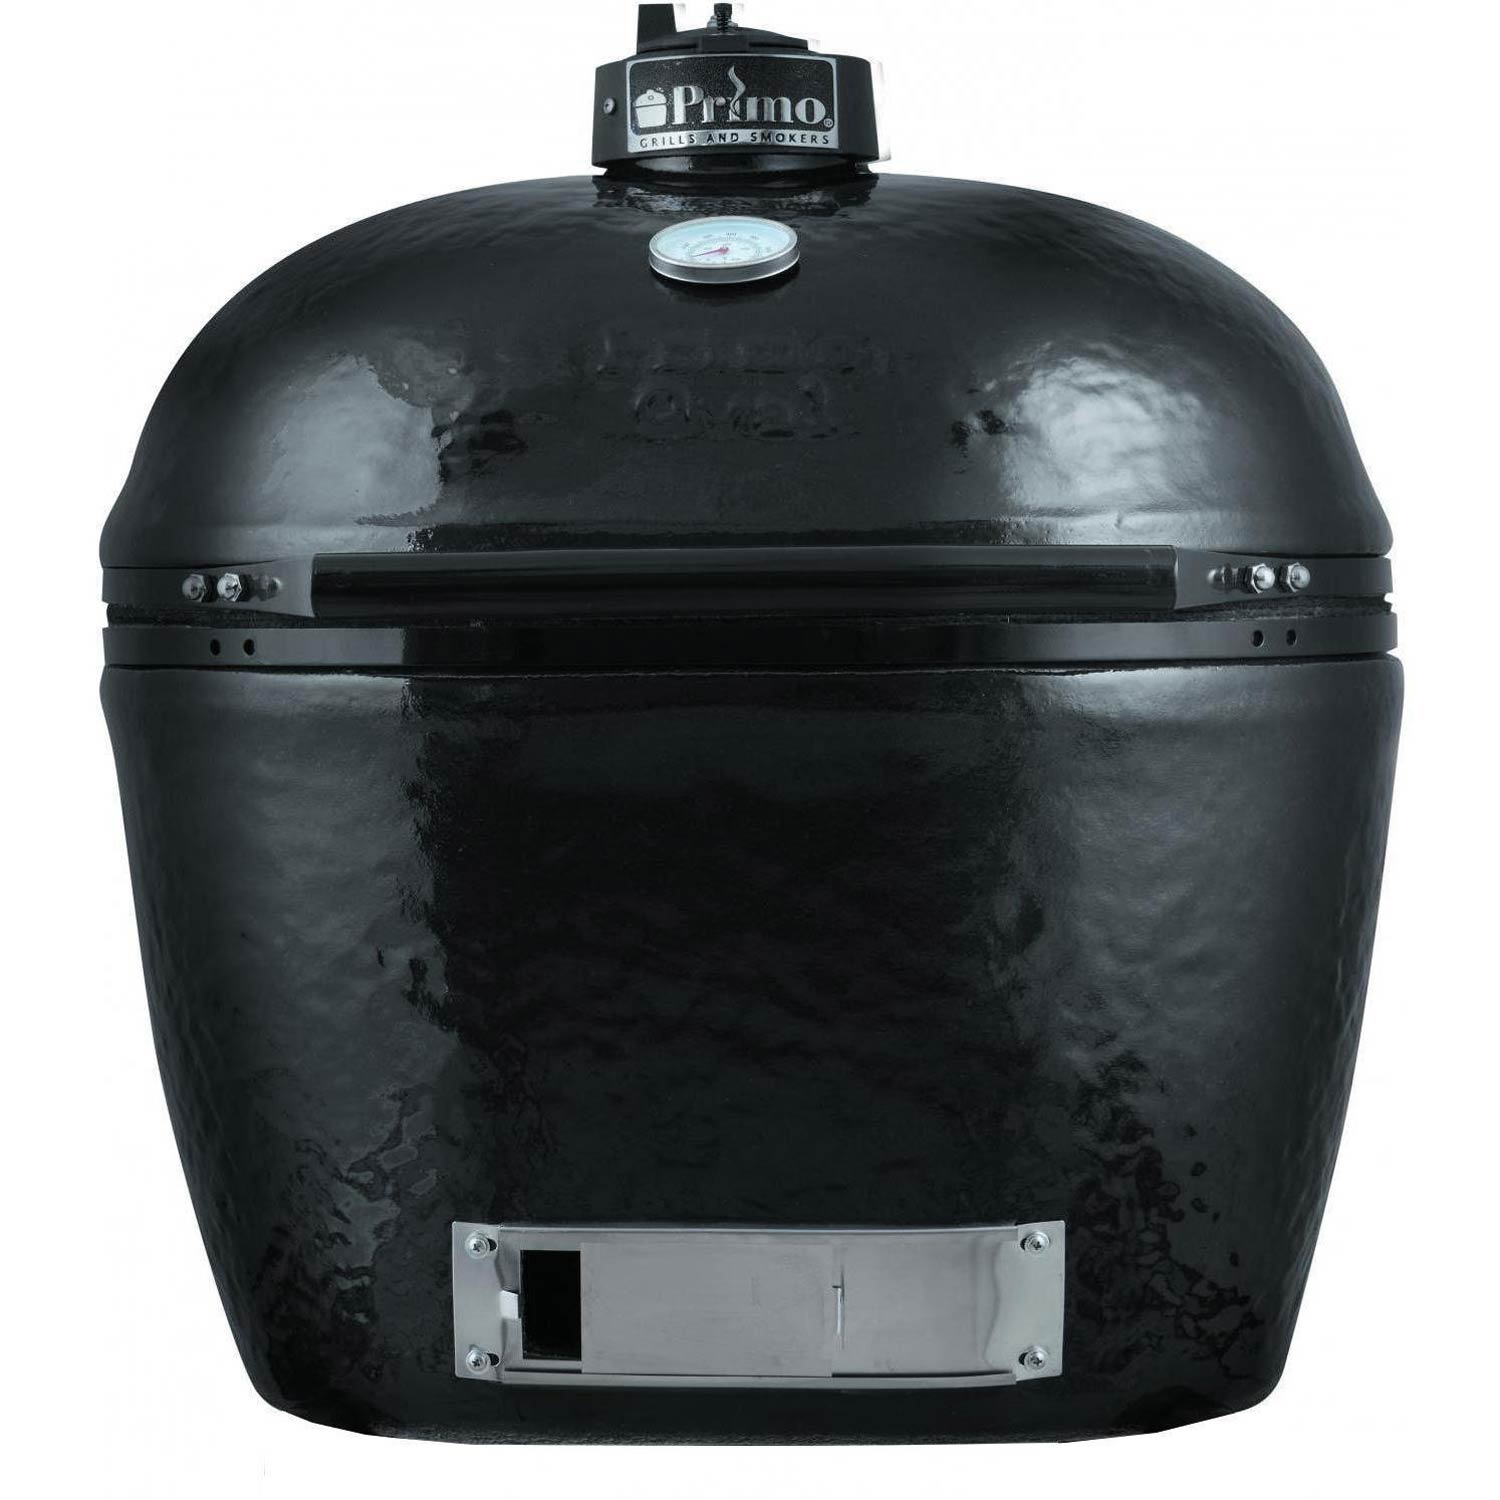 A charcoal grill gives you lots of cooking options!